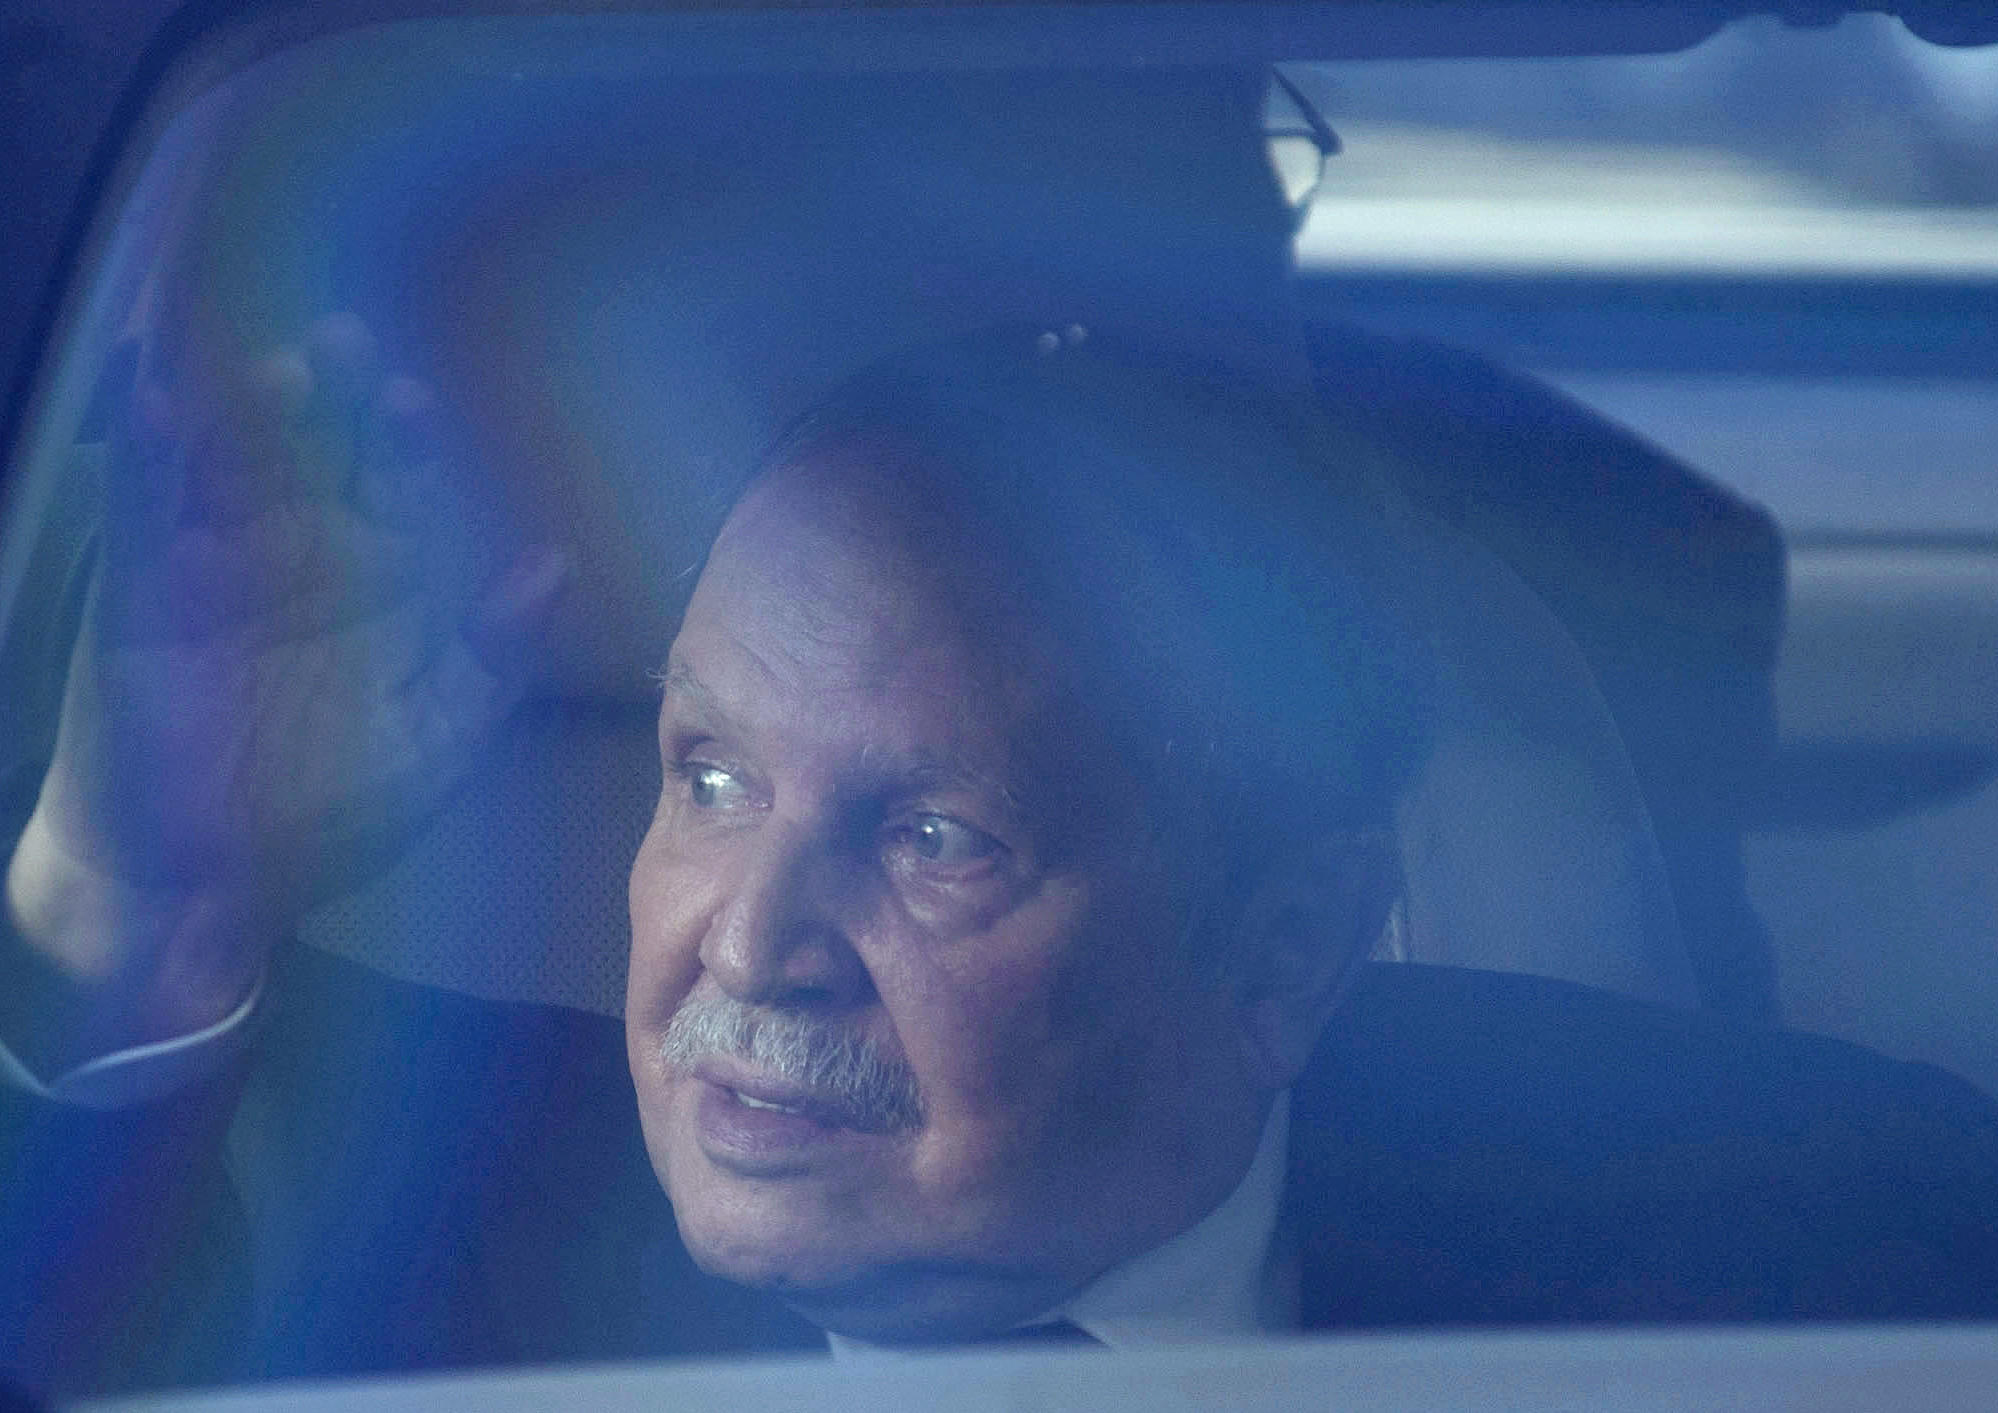 Algerian President Abdelaziz Bouteflika waves from inside a vehicle on March 3, 2014, in Algiers.